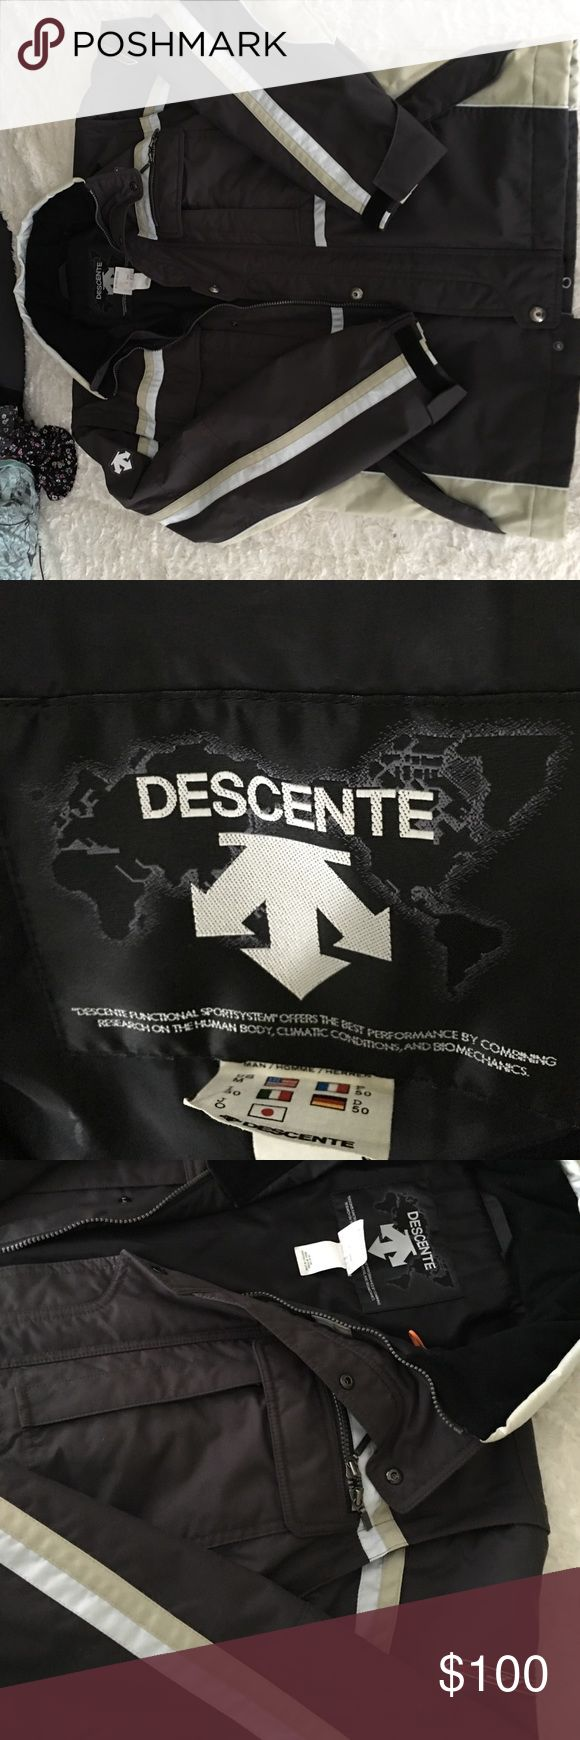 Awesome Descente ski jacket. Mens ski jacket water repellent and water resistant in excellent condition descente Jackets & Coats Ski & Snowboard